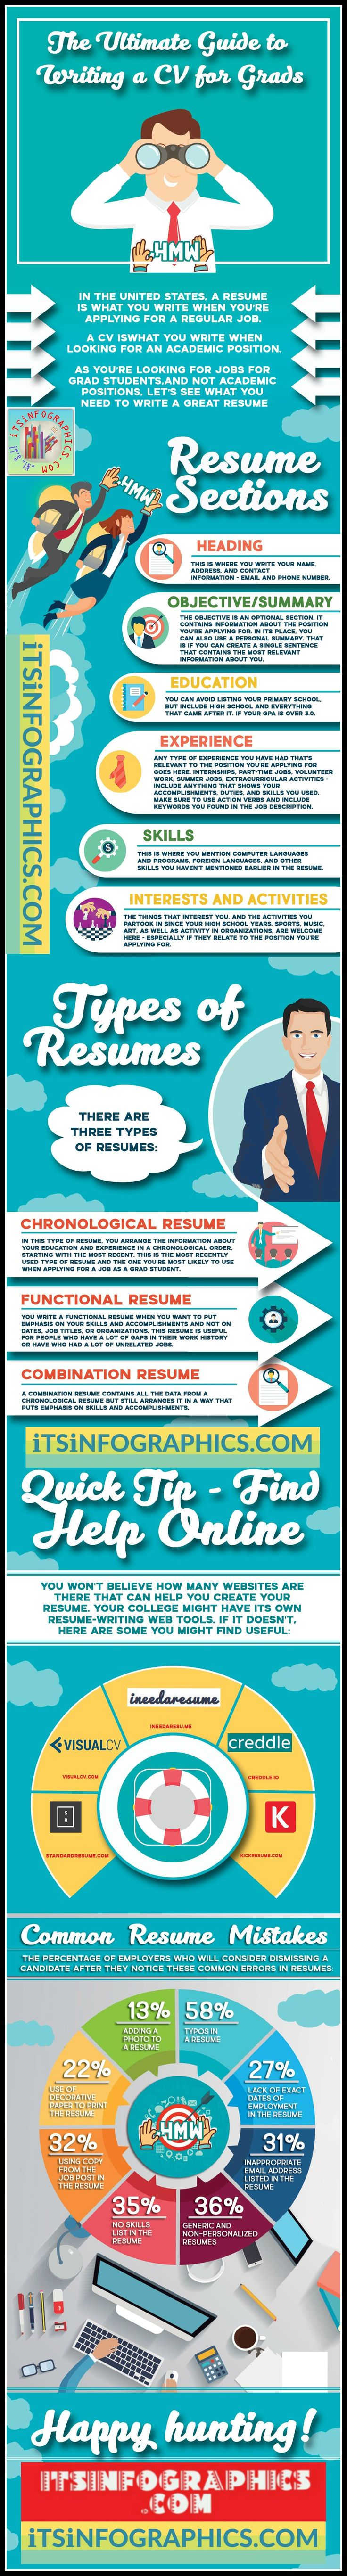 How to prepare your CV for the 21st century